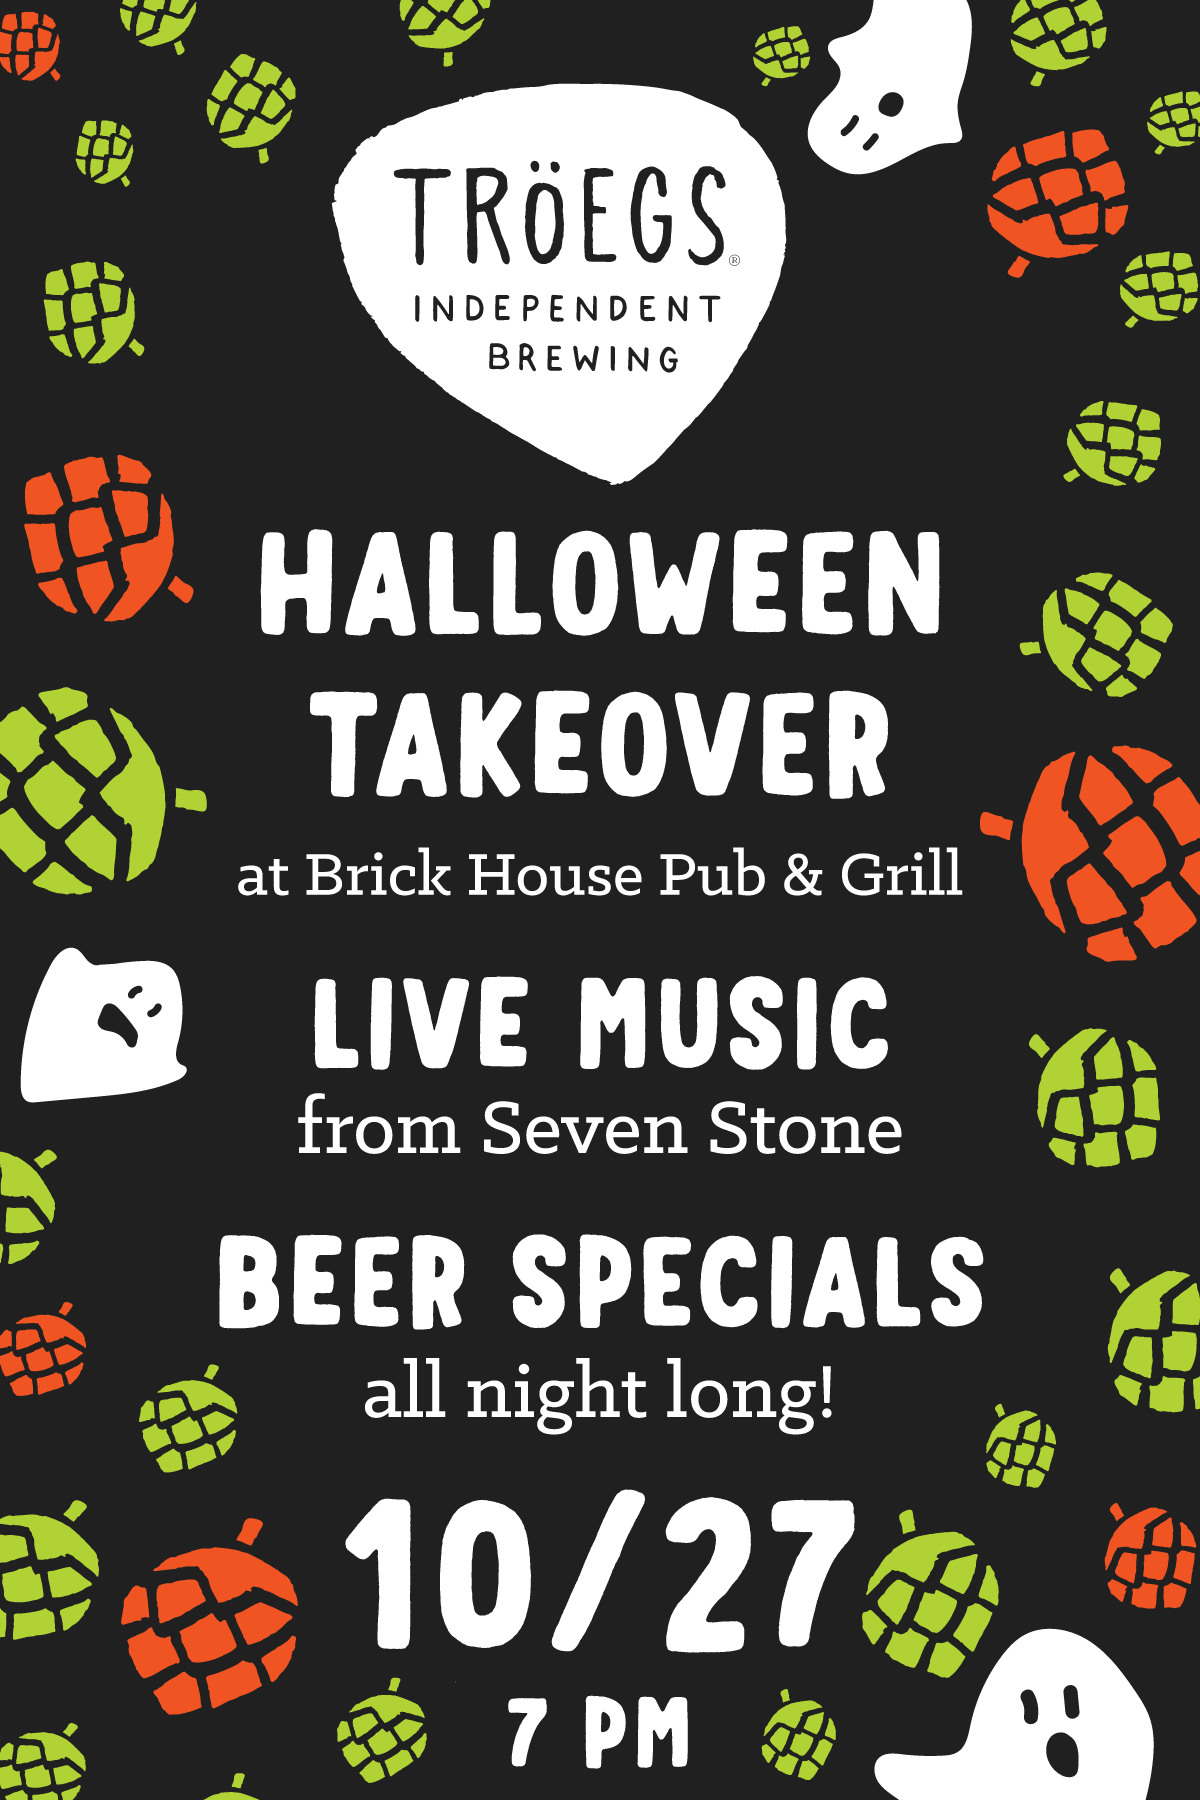 brick-house-pub_troegs-halloween-takeover-posters_10-04-18